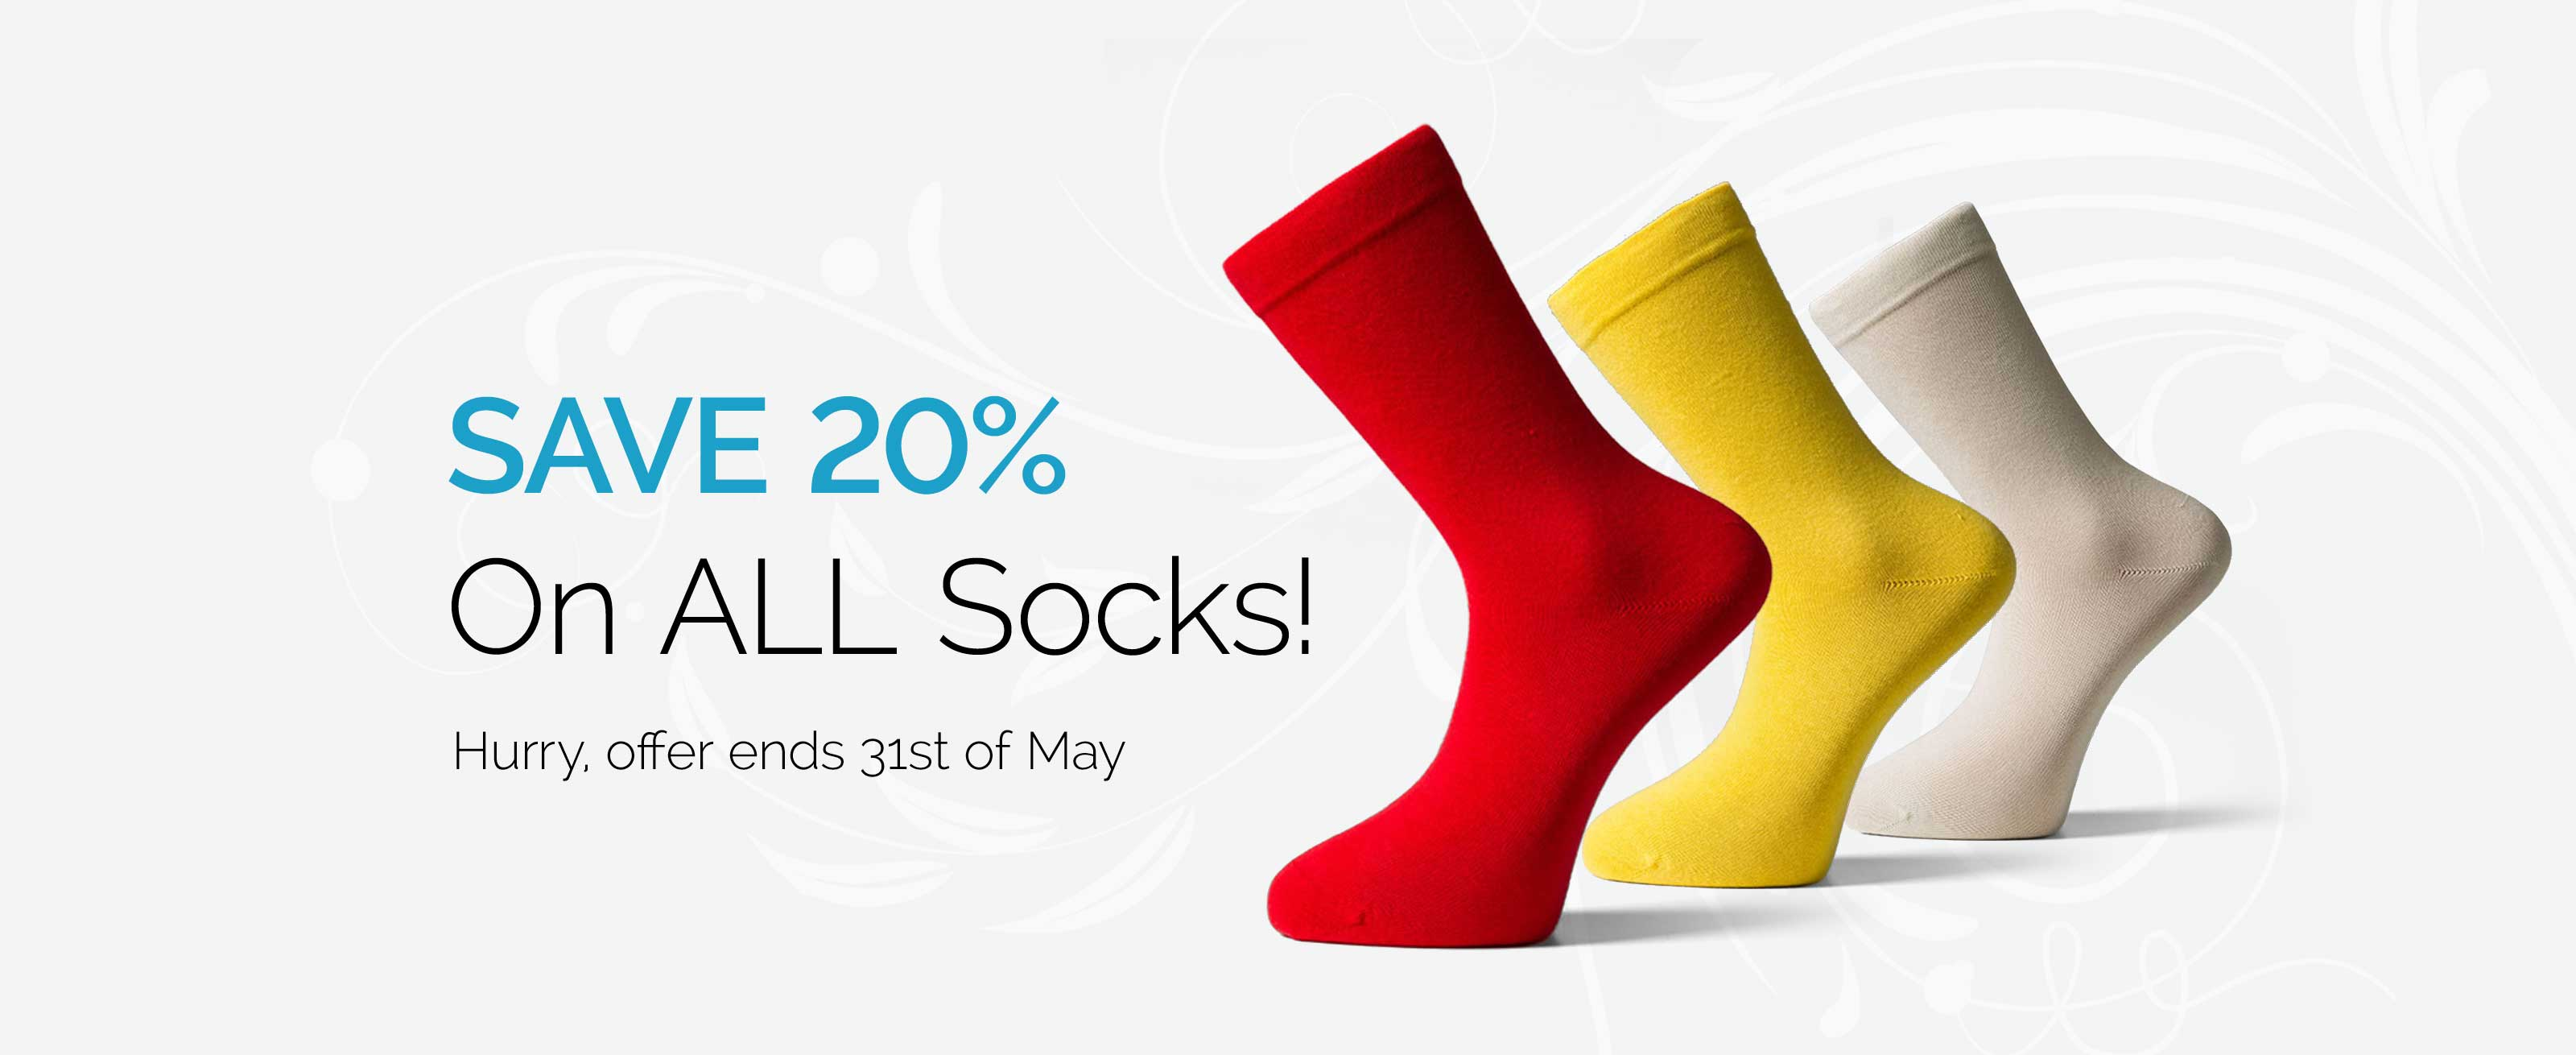 Save 20%_On ALL Socks!